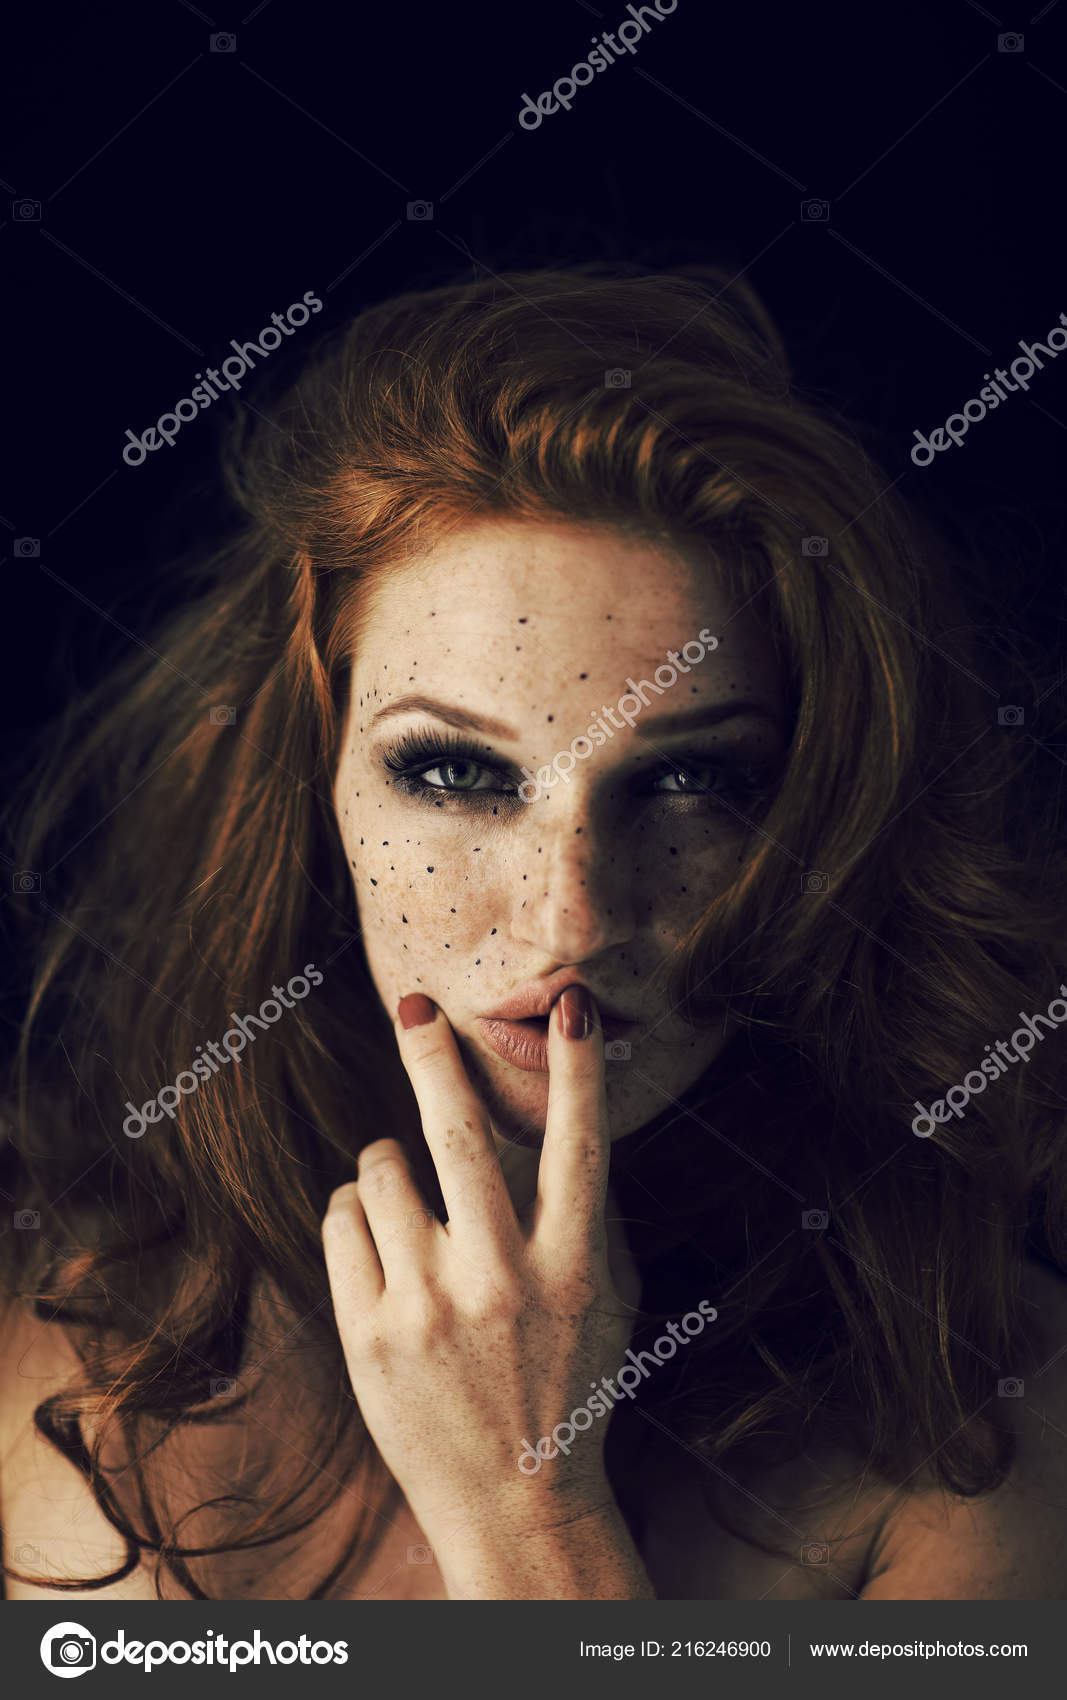 Join girl with red hair freckles remarkable, this